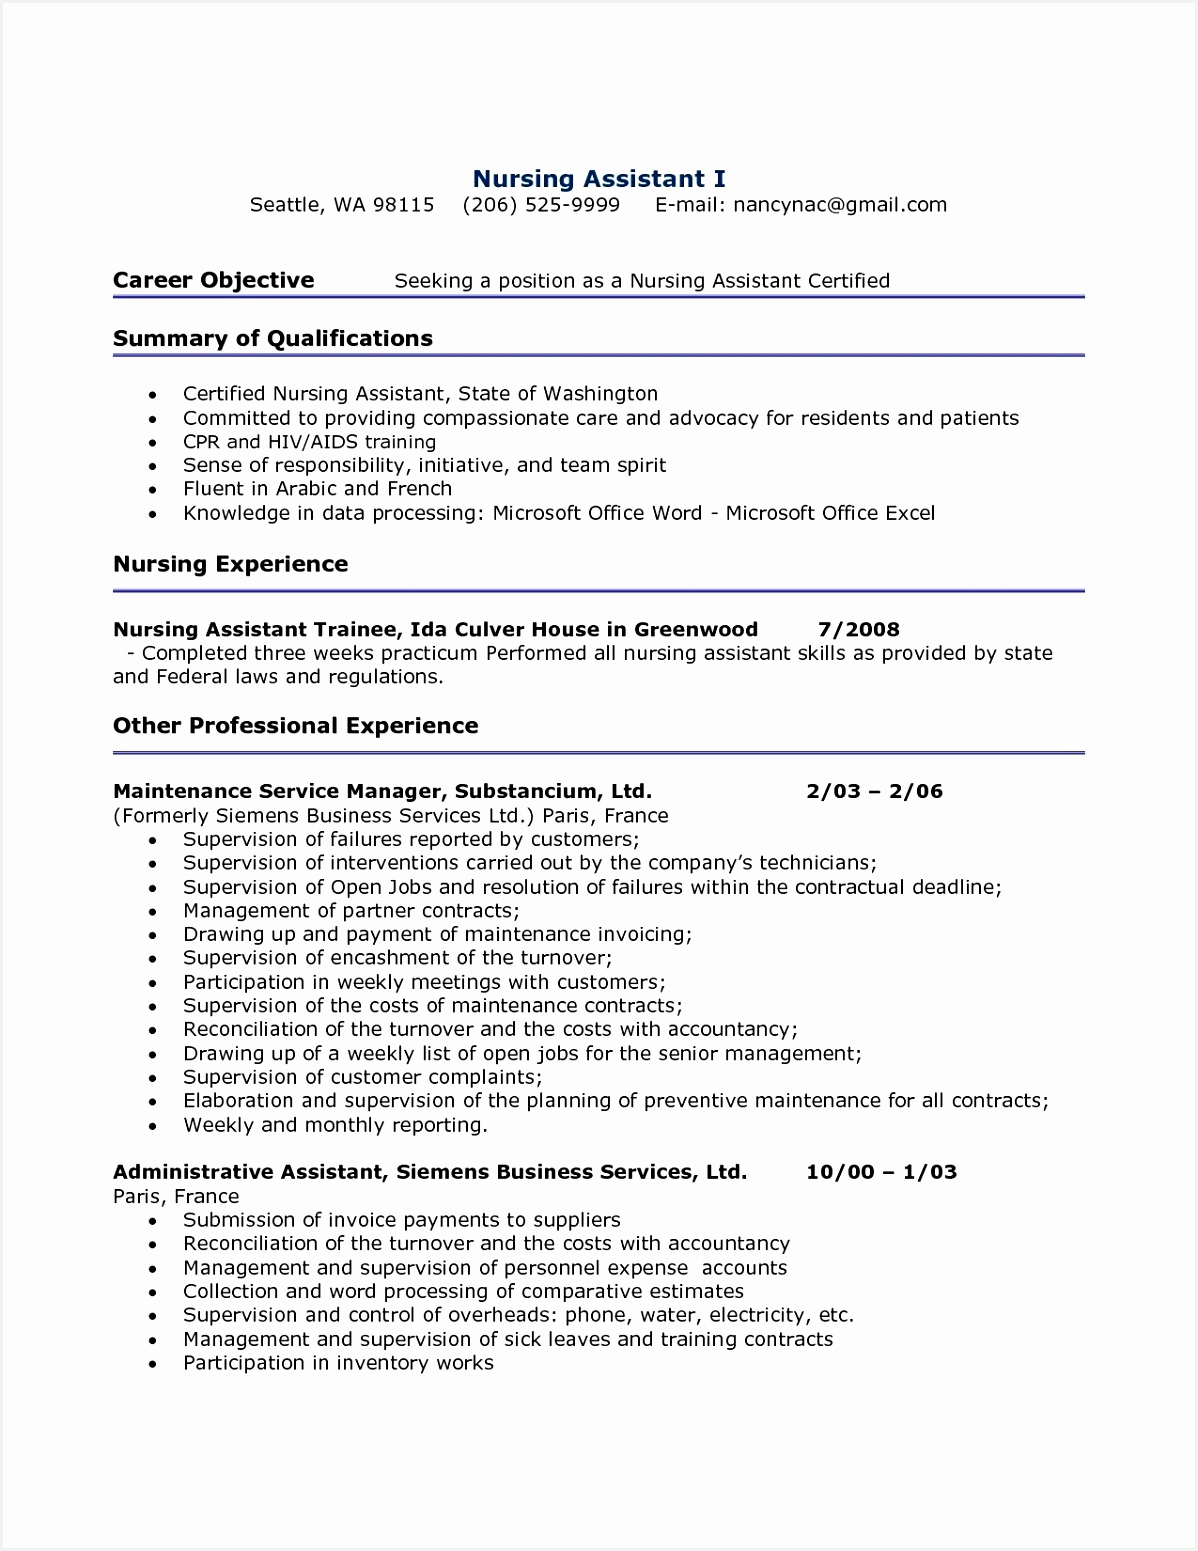 Example Of A Written Resume Afvxf Fresh Passion Letter Writing Template Gallery15511198